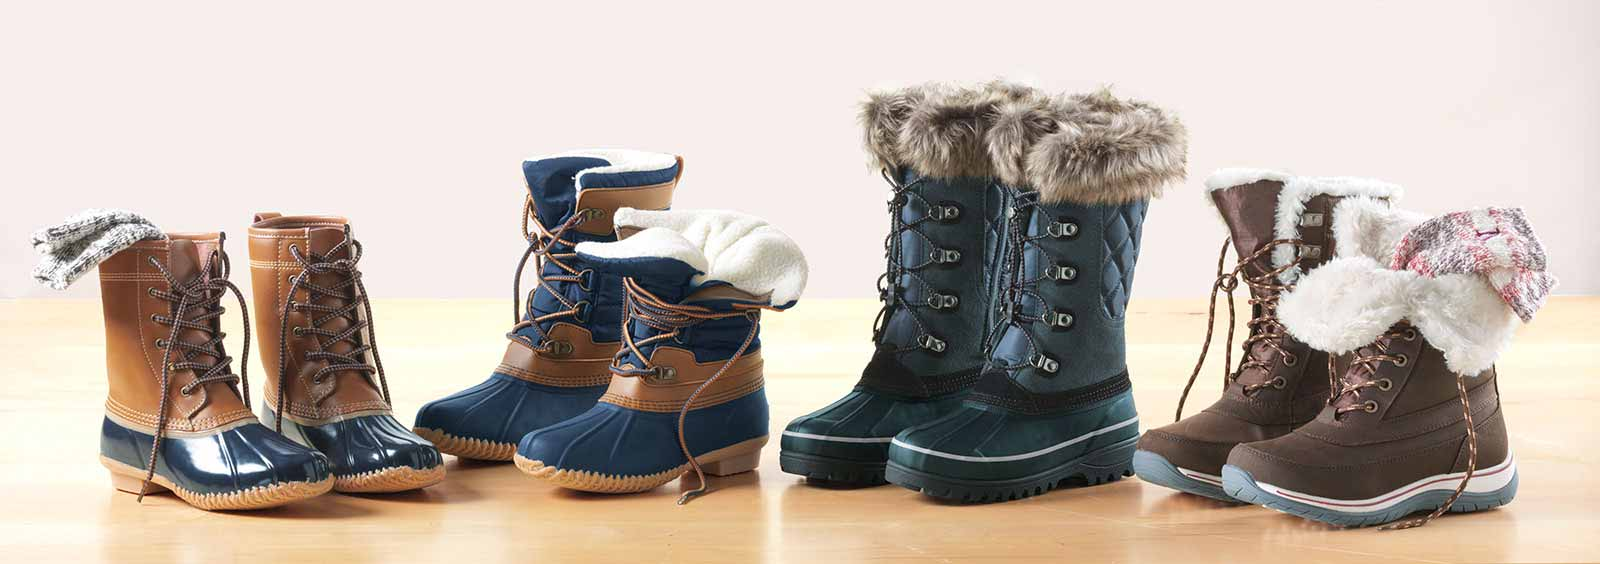 Snow Boots vs. Tennis Shoes - Which are